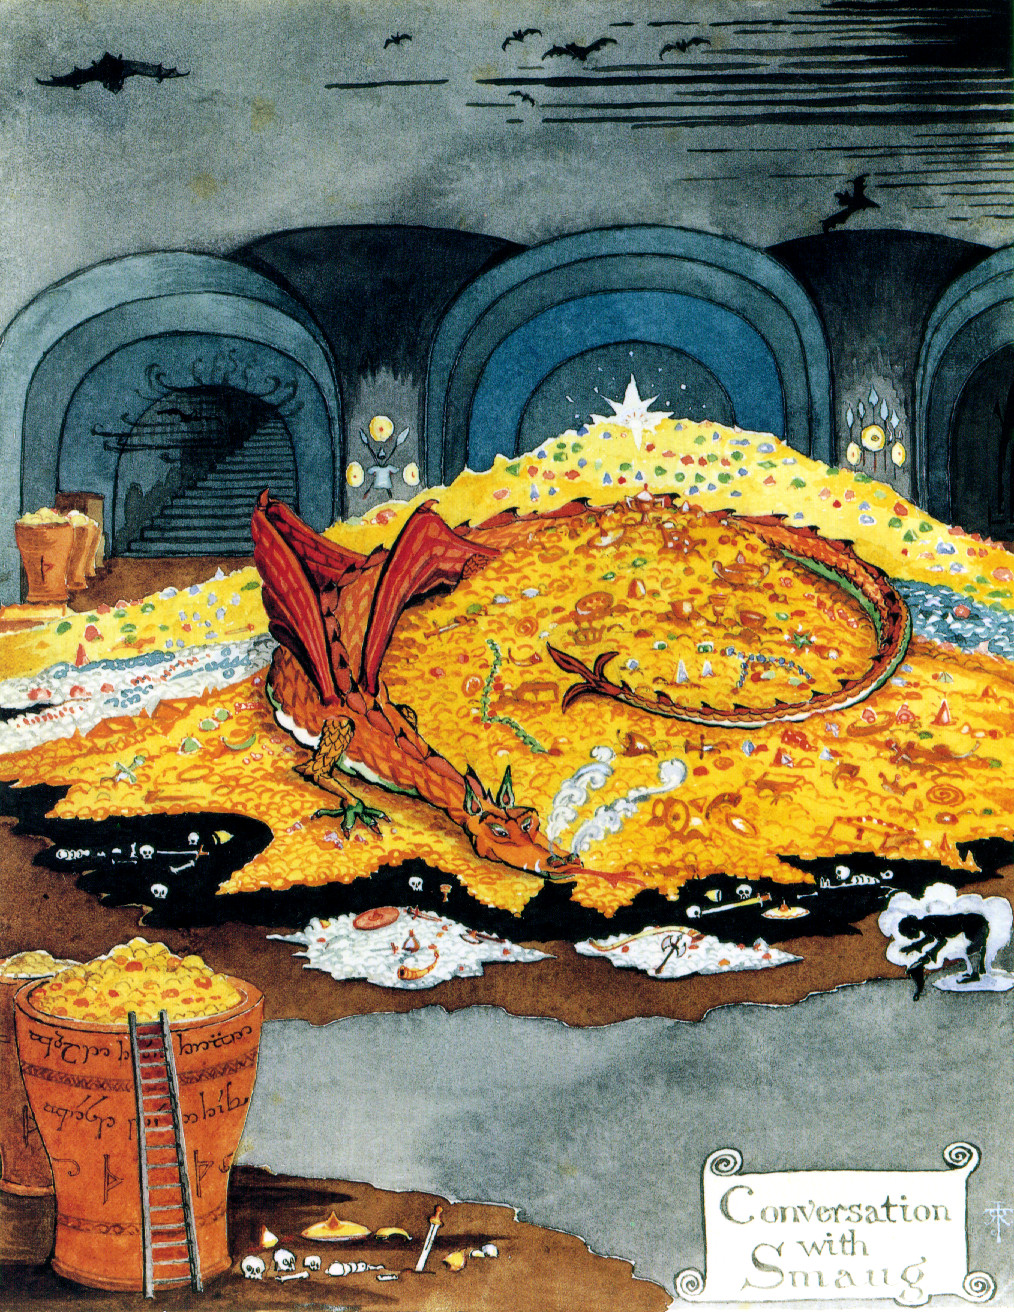 Conversations with Smaug - J.R.R. Tolkien